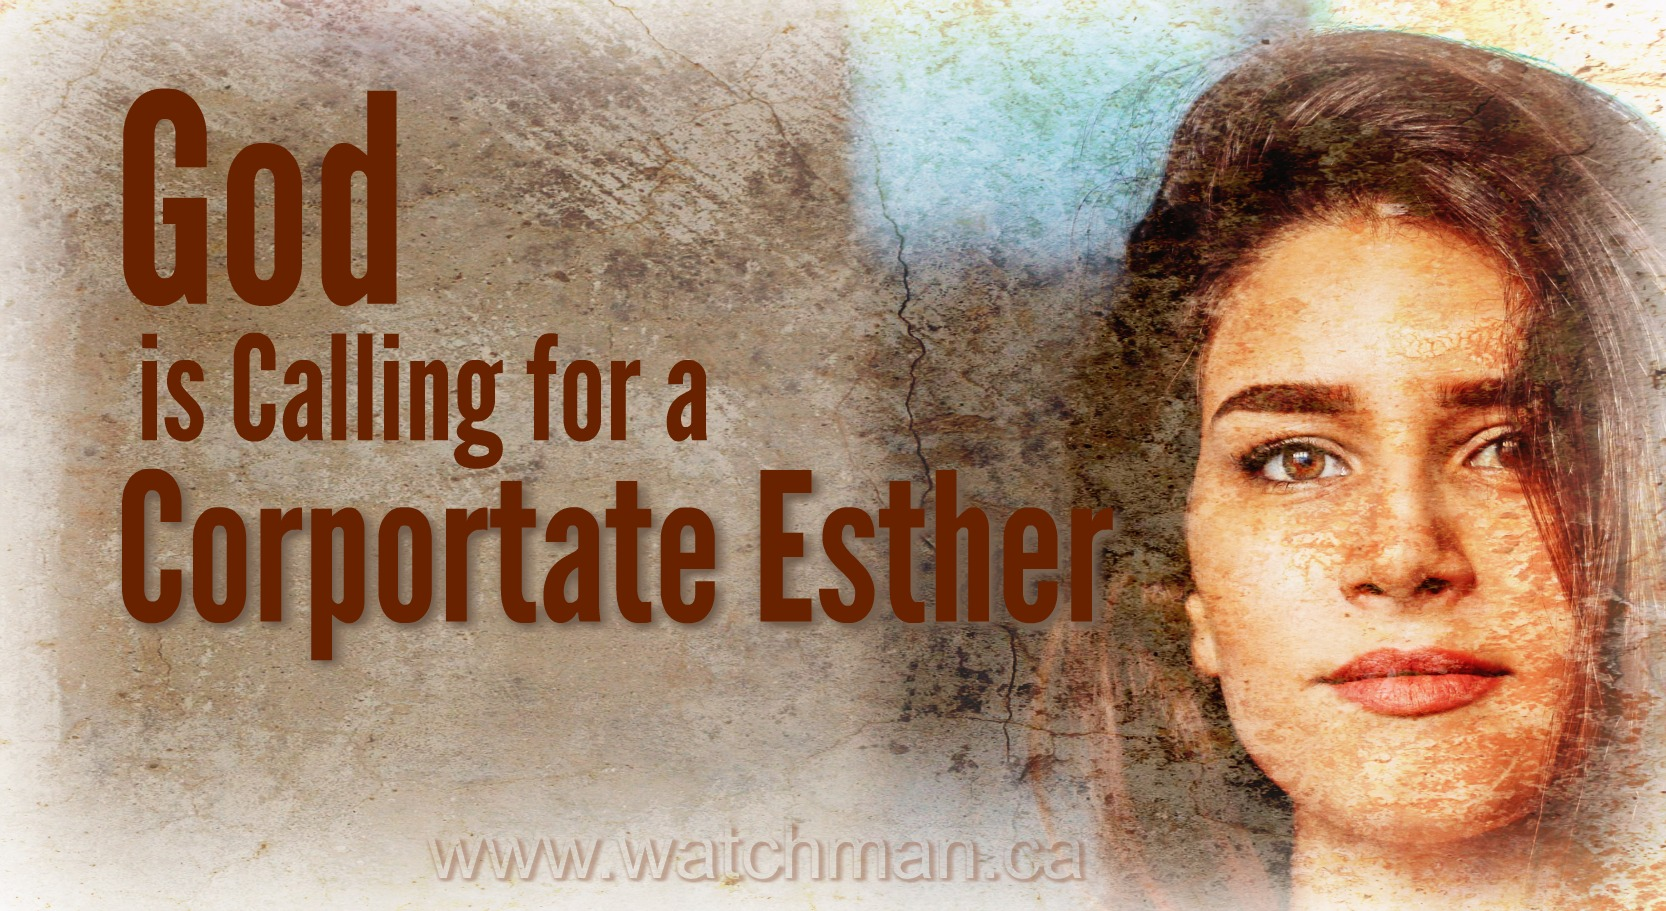 corporate esther